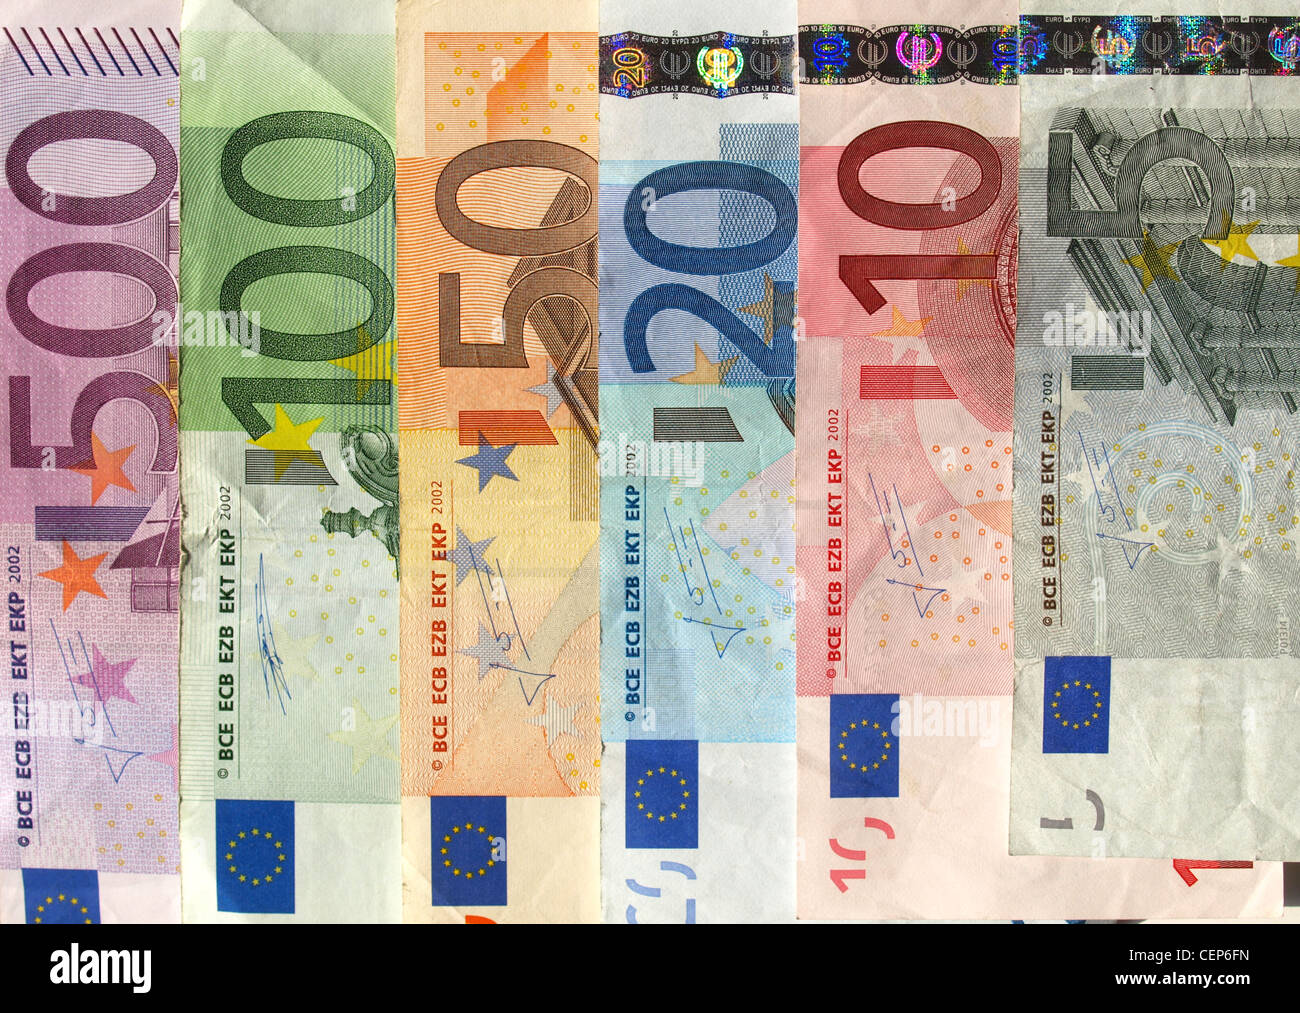 Euro banknote (currency of the European Union) - Stock Image